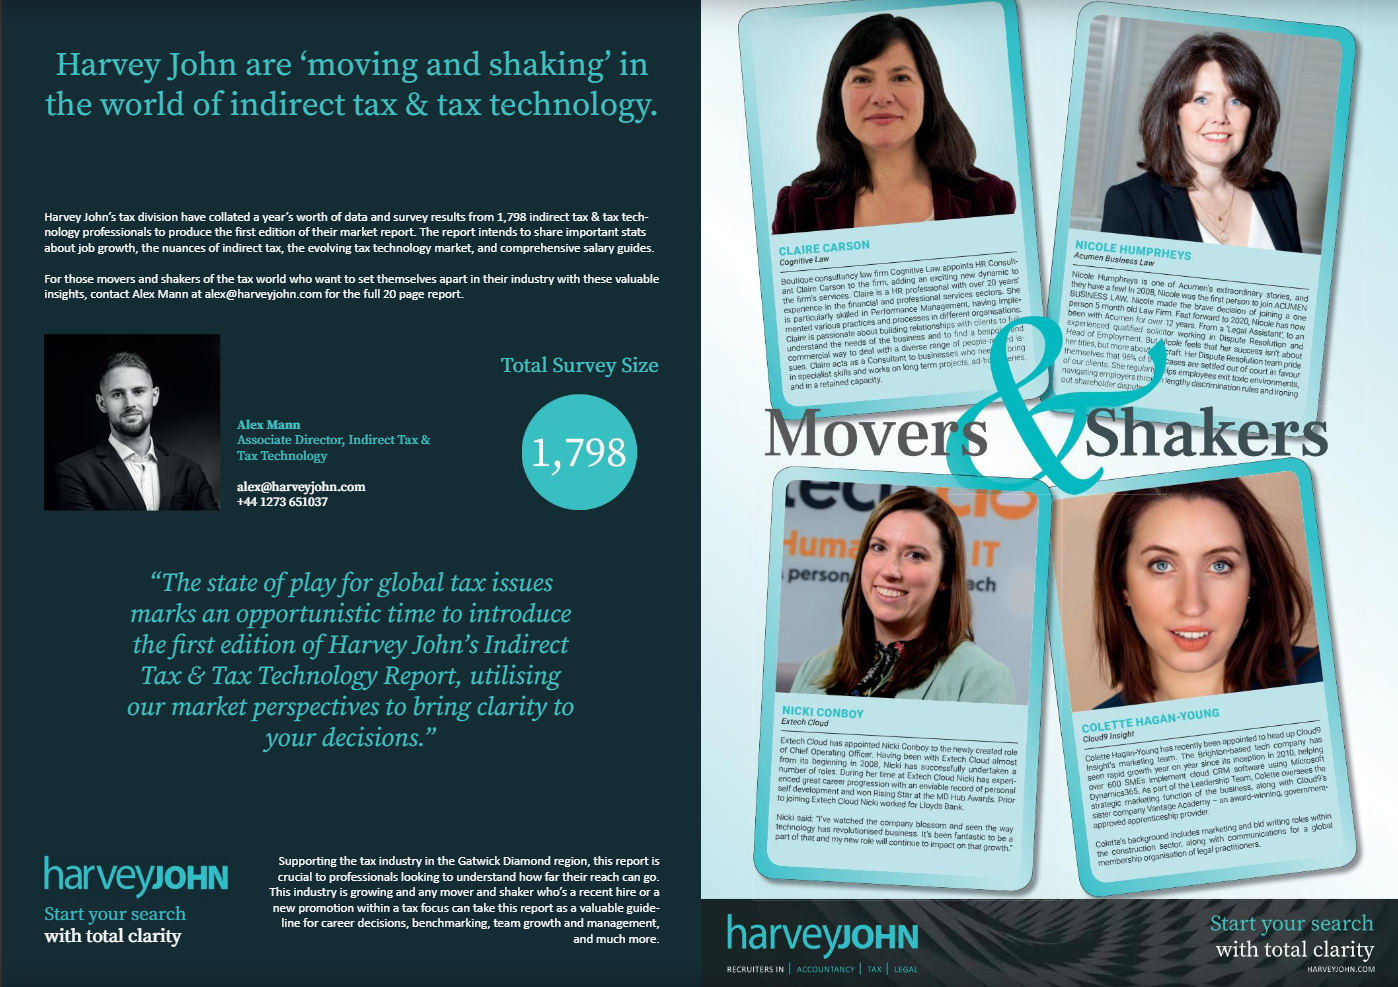 Movers & Shakers March 2020